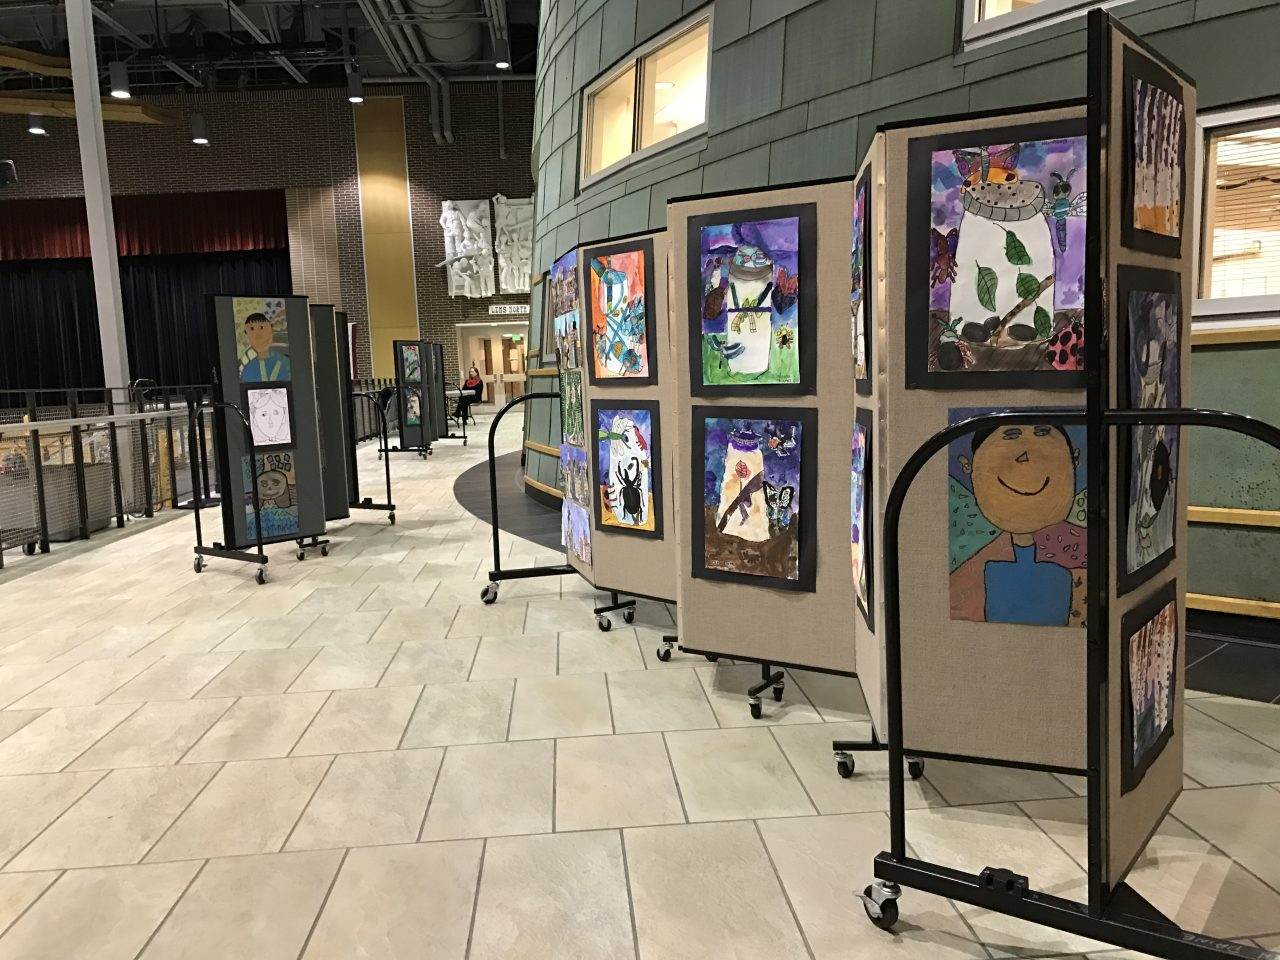 Artwork is displayed on portable partitions in a school